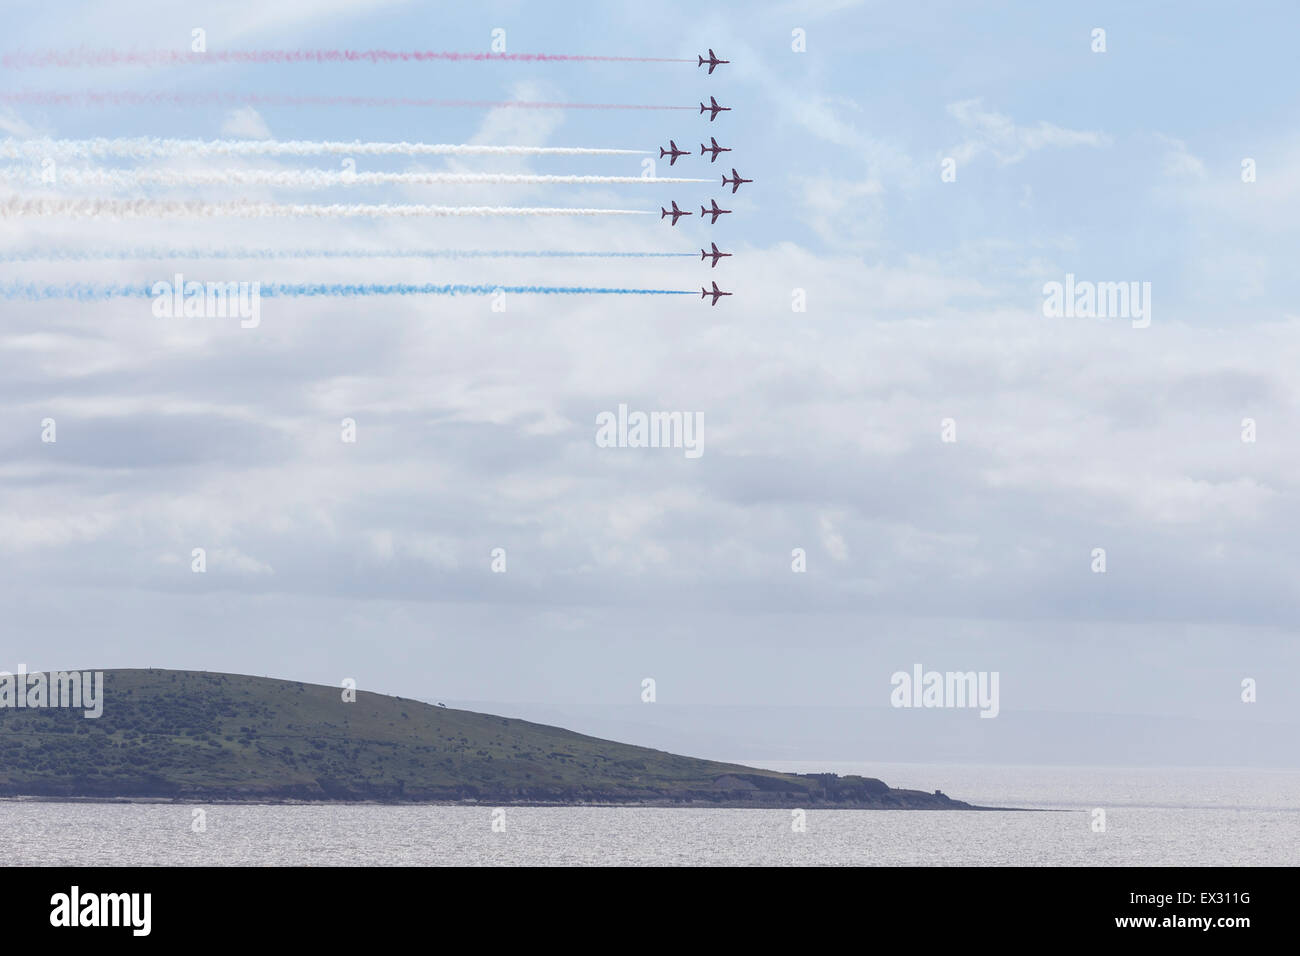 RAF Red Arrows aerobatic display team in formation above Brean Down - Stock Image